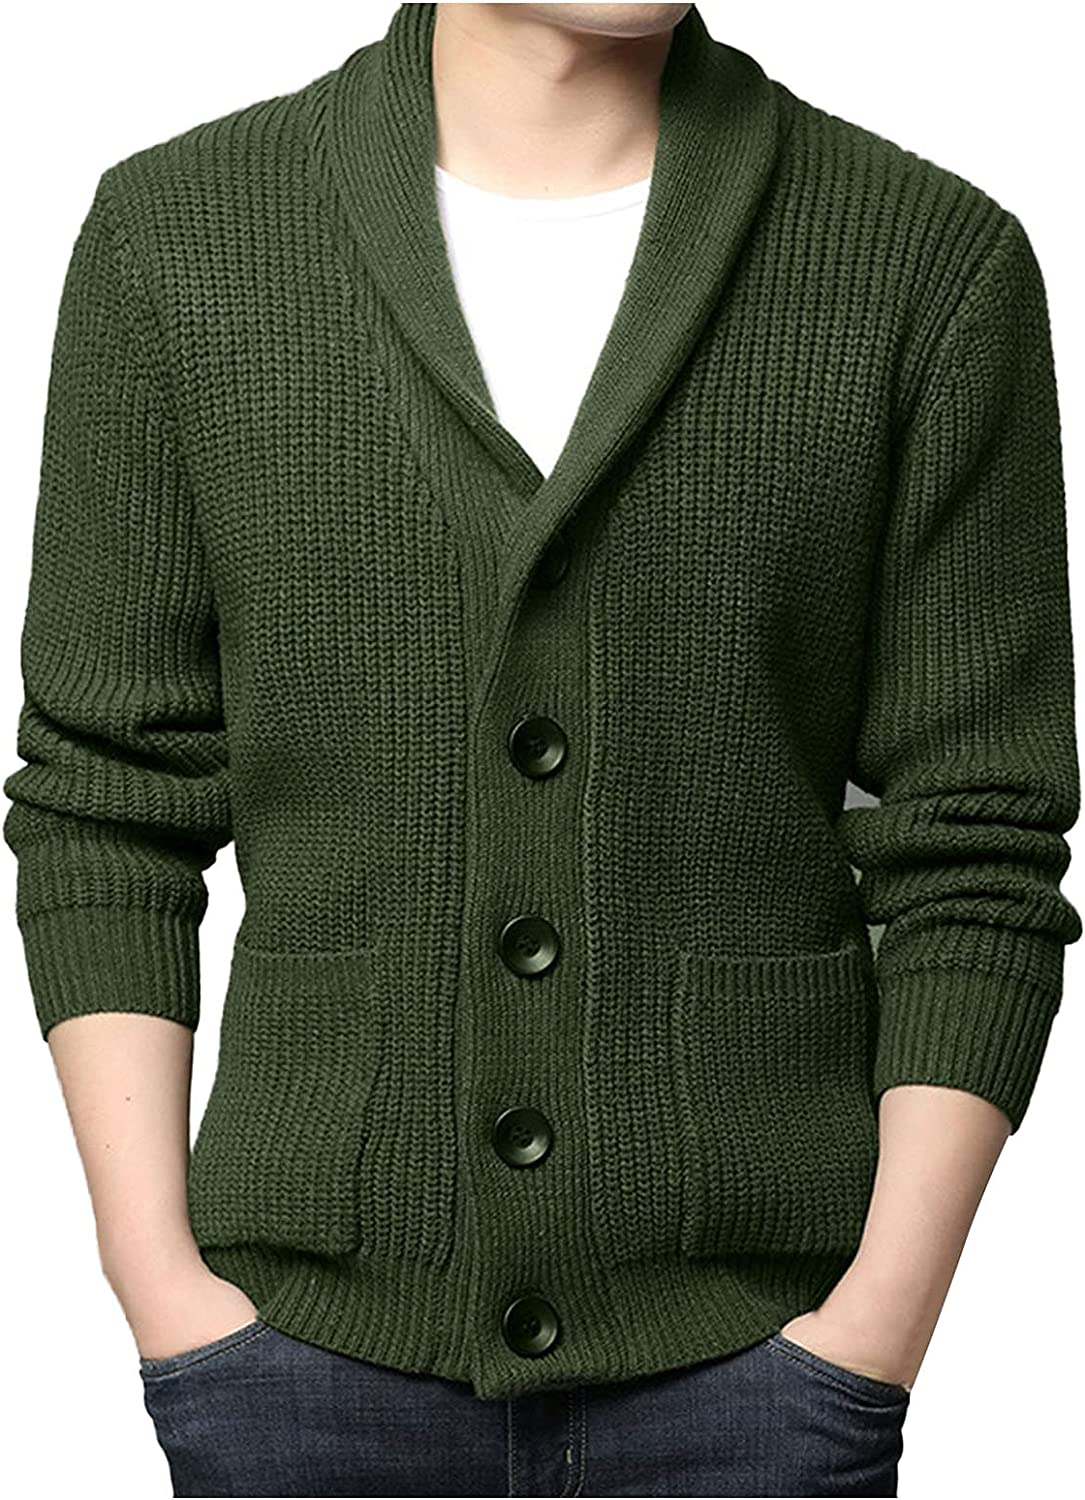 Huangse Sweater for Men Casual Comfortable Fit Cardigan Sweater Shawl Collar Soft Fabric with Ribbing Edge